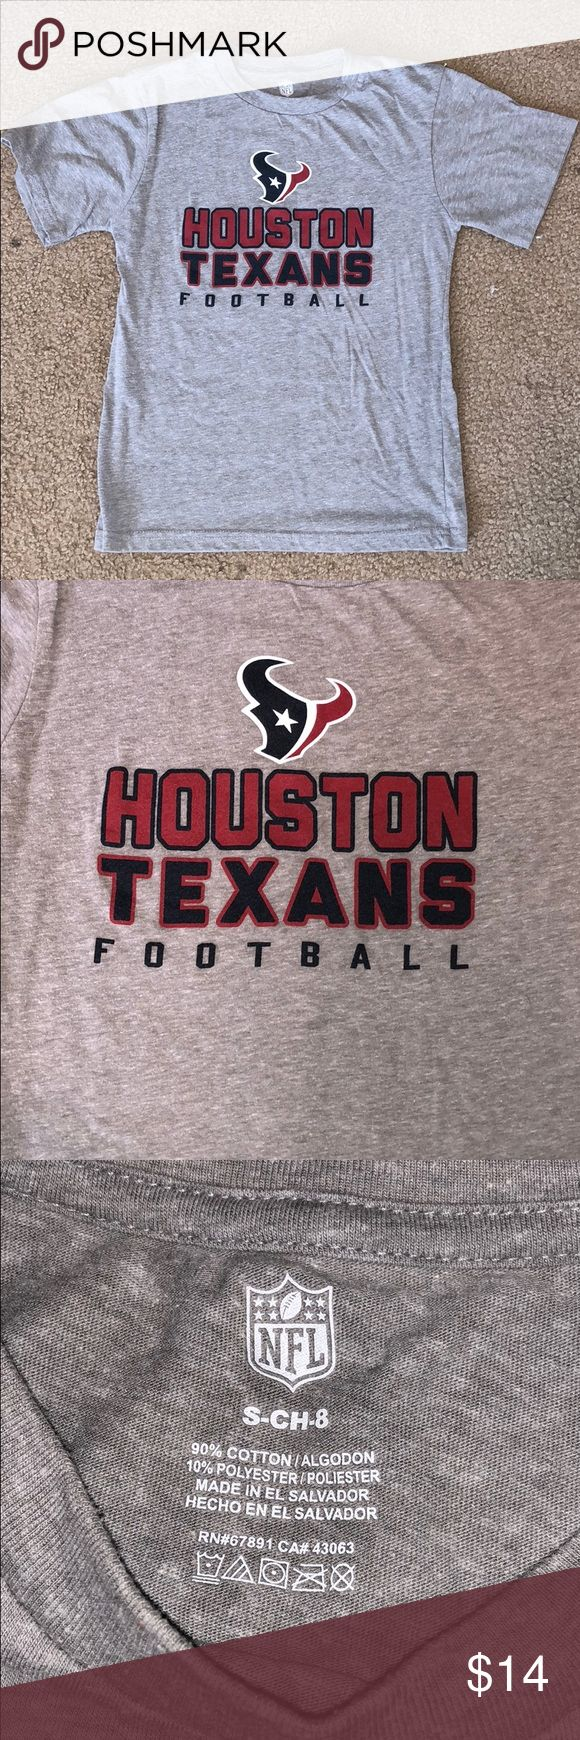 Children's NFL Houston Texans Football Tee!!! Children's NFL Houston Texans Football Tee!!! Size Small -Child-8 NFL Shirts & Tops Tees - Short Sleeve